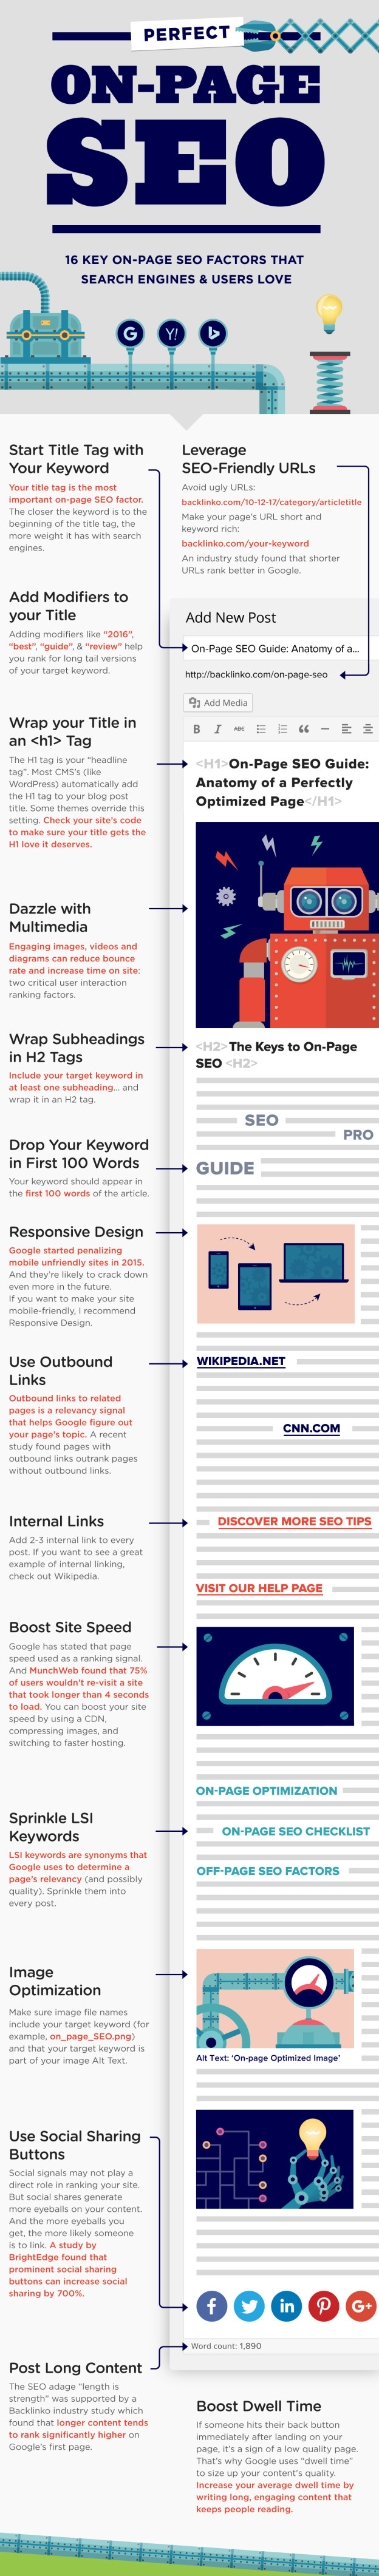 on-page-seo-16-key-areas-google-wants-you-to-optimise1